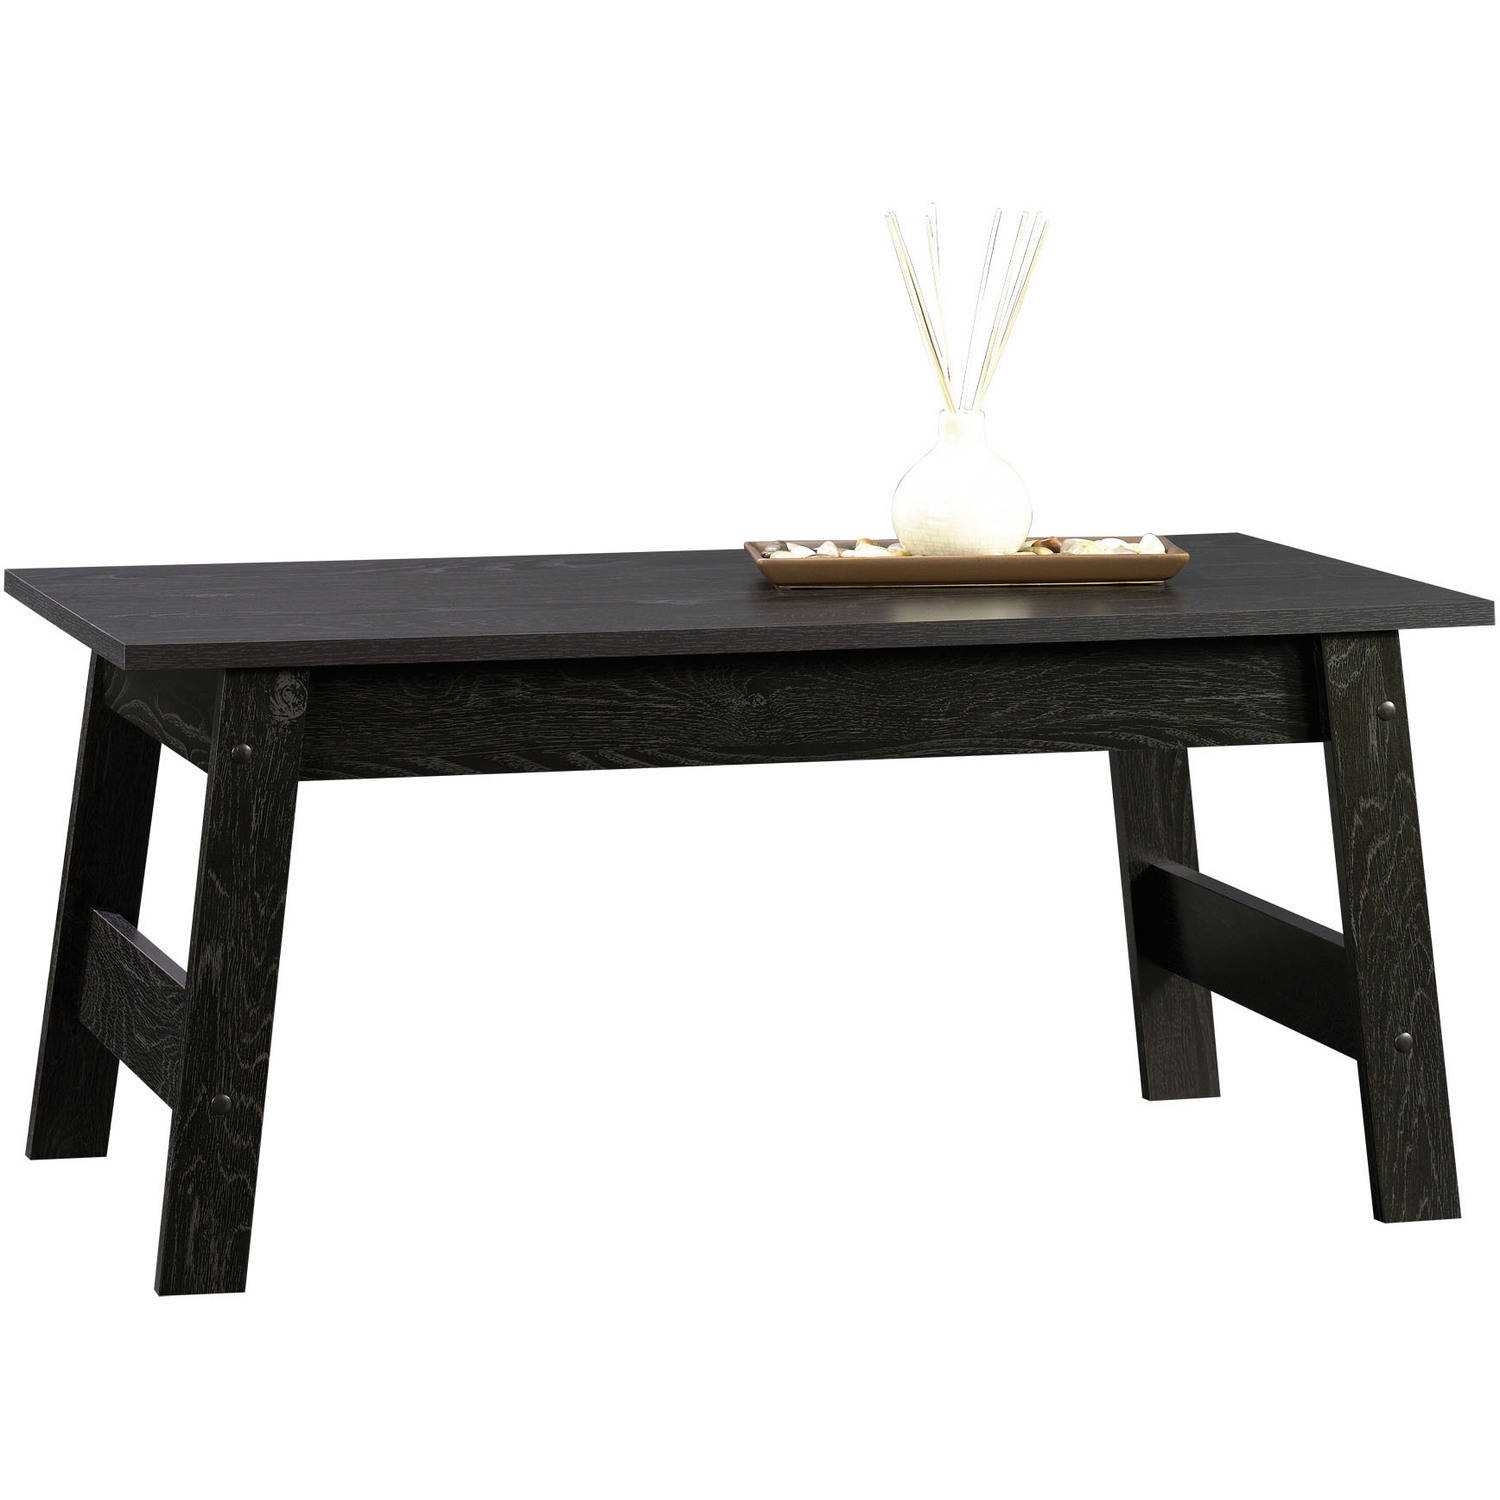 Black and wood coffee table - Black And Wood Coffee Table 12